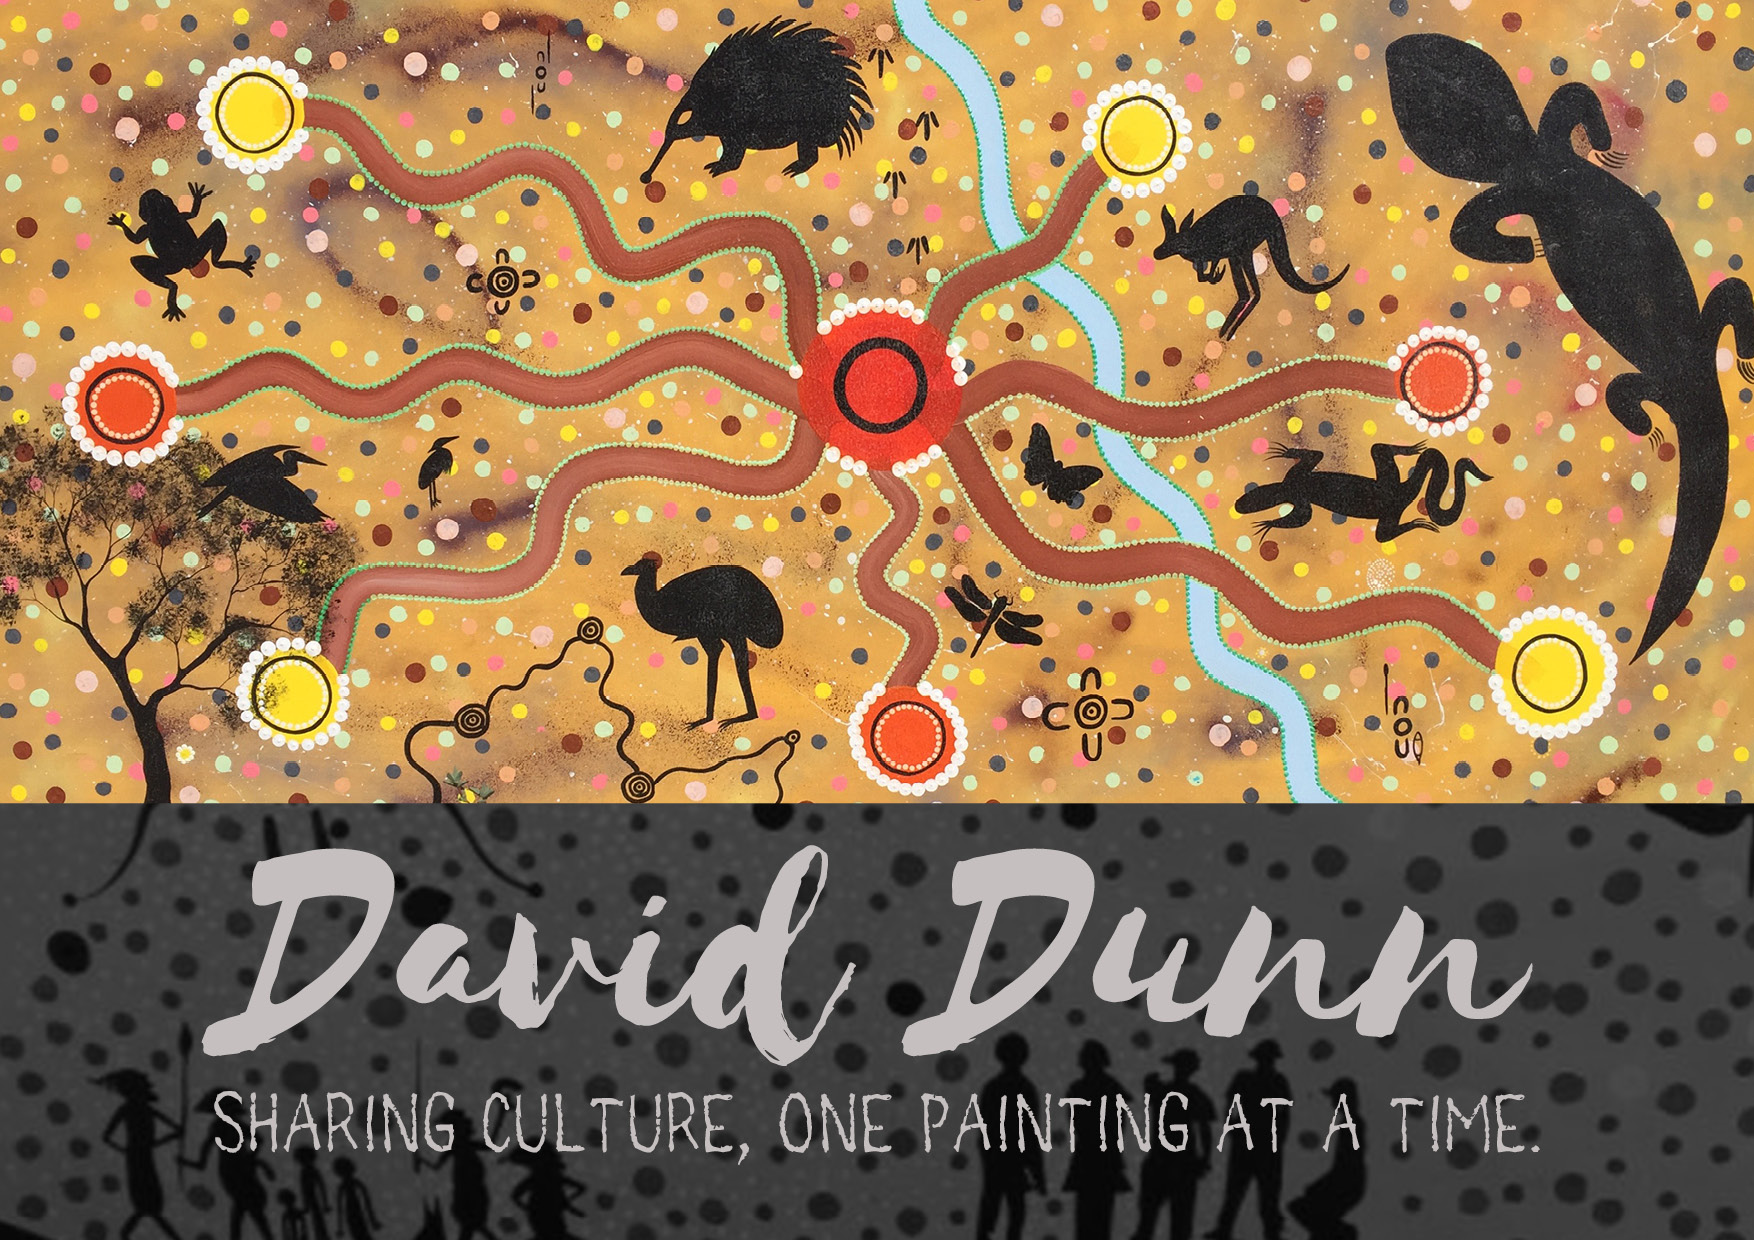 David Dunn: Sharing Culture, One Painting at a Time